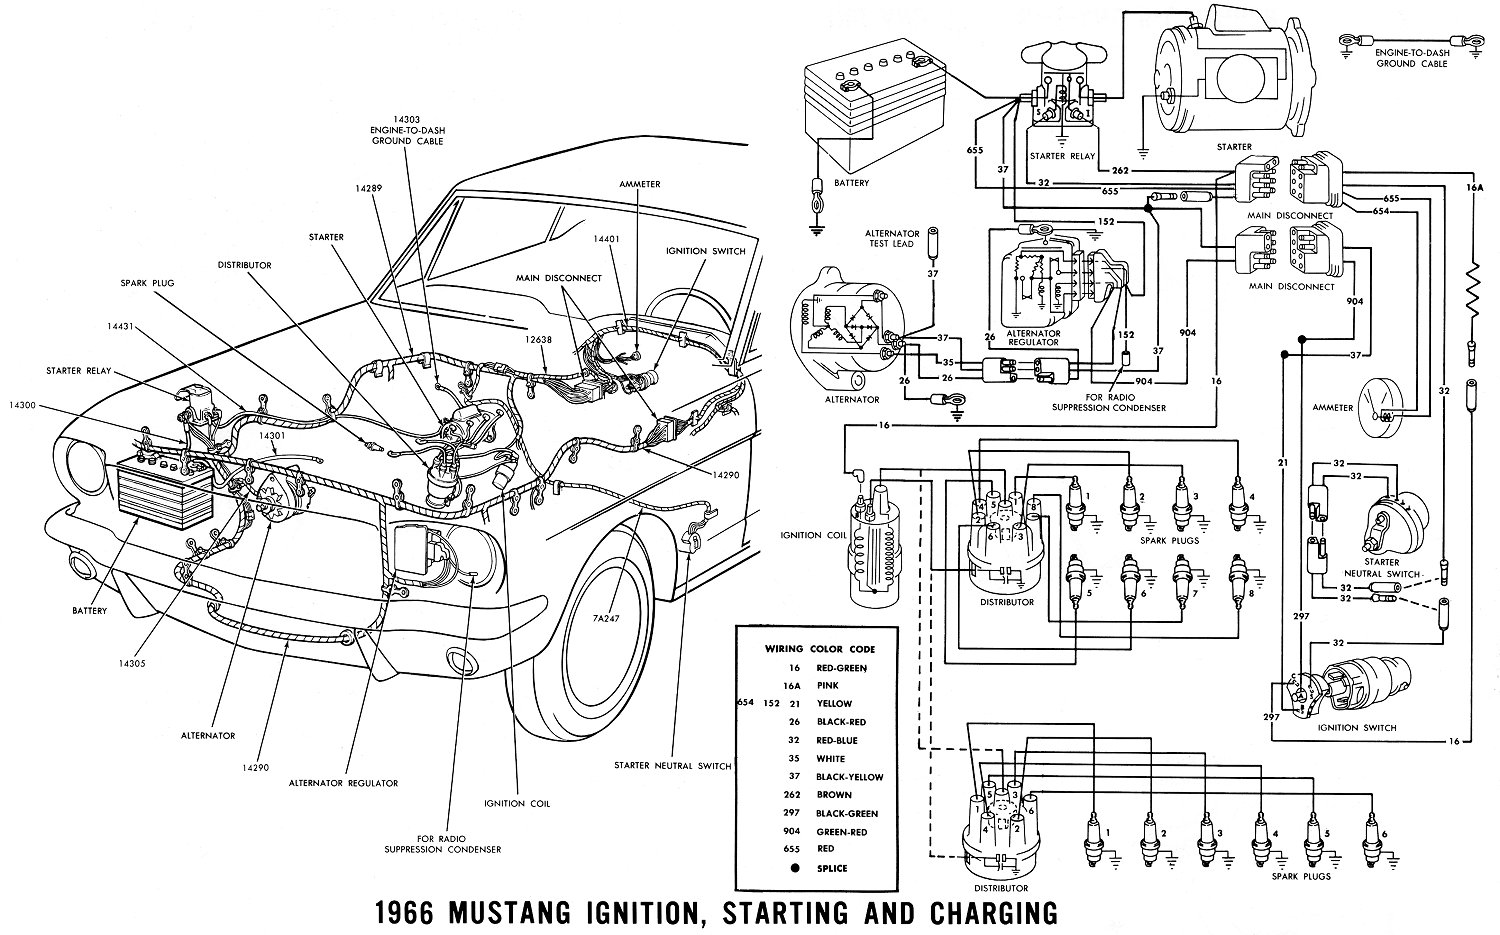 1971 Chevy Heater Hose Routing Diagram besides Awesome 1996 Chevy 1500 Wiring Diagram 89 On Hdmi Wire Color Diagram With 1996 Chevy 1500 Wiring Diagram moreover Wiring furthermore Pontiac Montana Wiring Diagram further 99 Cadillac Deville Fuse Box Location 1998 Cadillac Deville Fuse In 1998 Ford F150 Fuse Box Diagram. on 1999 pontiac grand prix radio wiring diagram